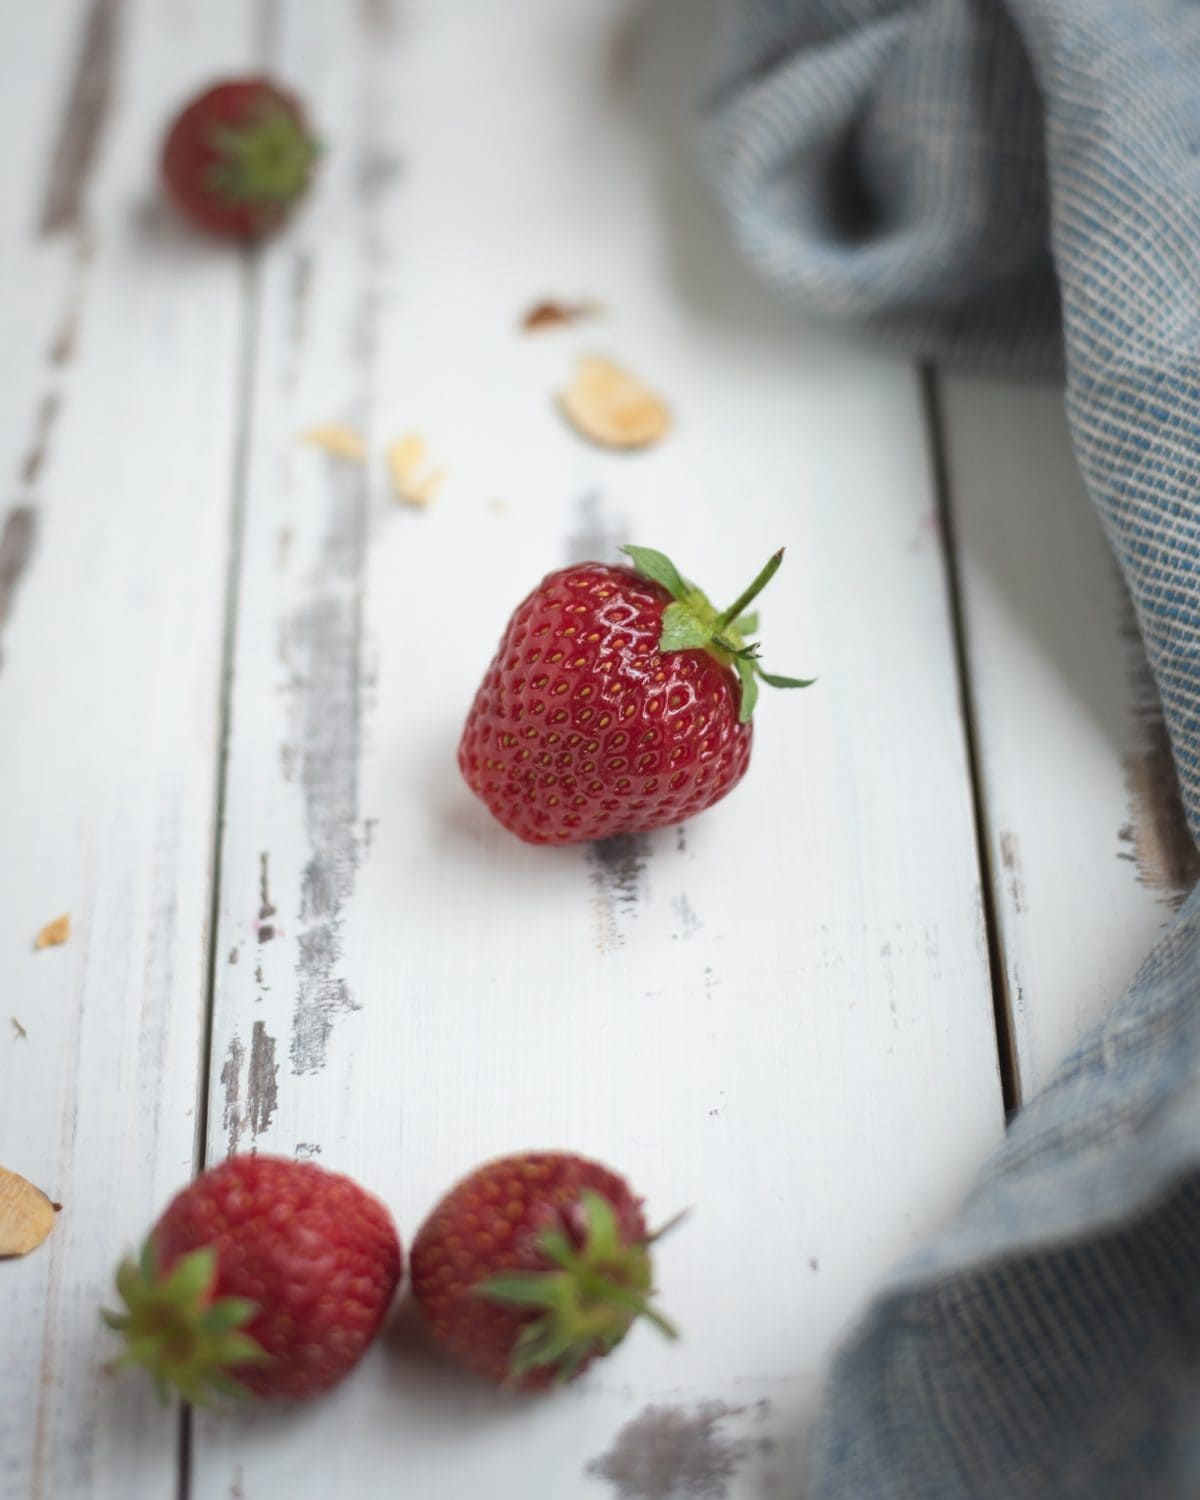 Picture of a strawberry on a white background